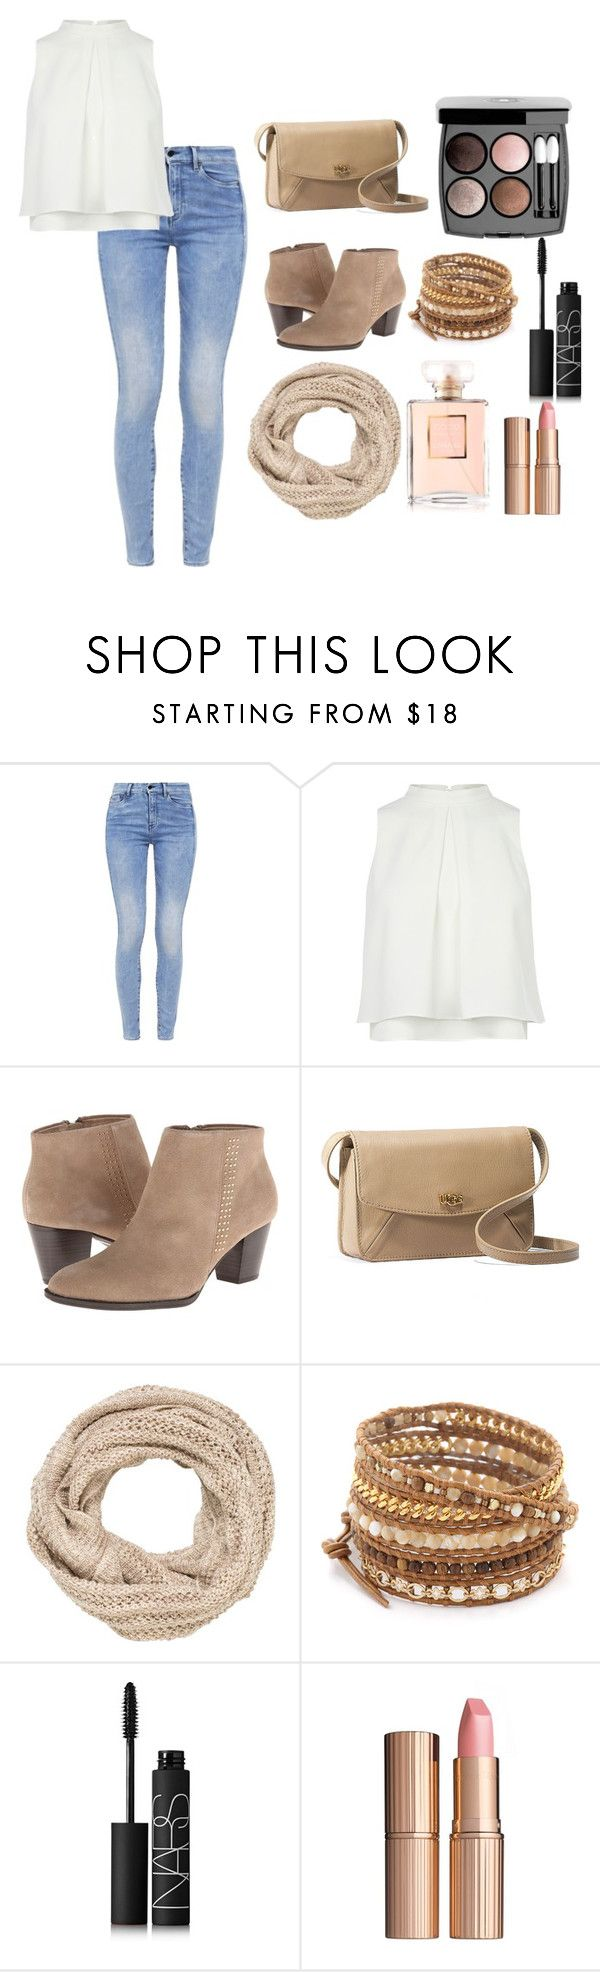 """#Style"" by saniatanseem ❤ liked on Polyvore featuring G-Star, Vionic, UGG Australia, maurices, Chan Luu, Chanel, NARS Cosmetics and Charlotte Tilbury"